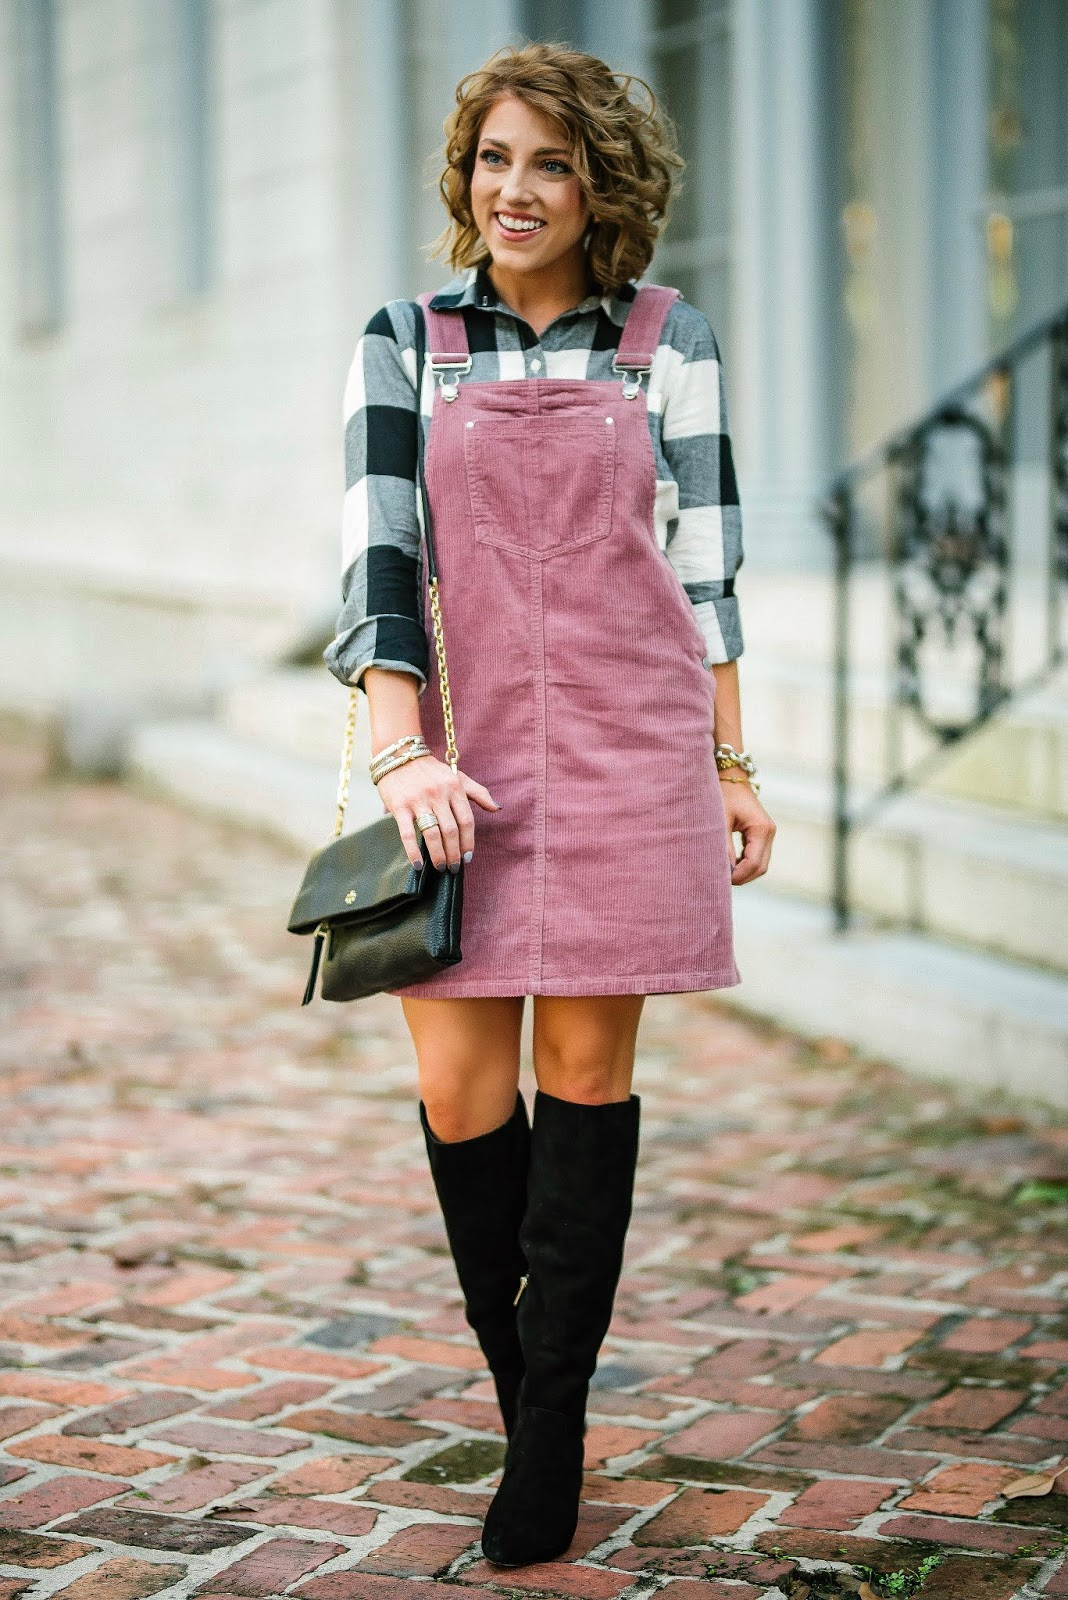 Fall Style: Pink Corduroy Pini + Black and White Plaid Shirt - Something Delightful Blog